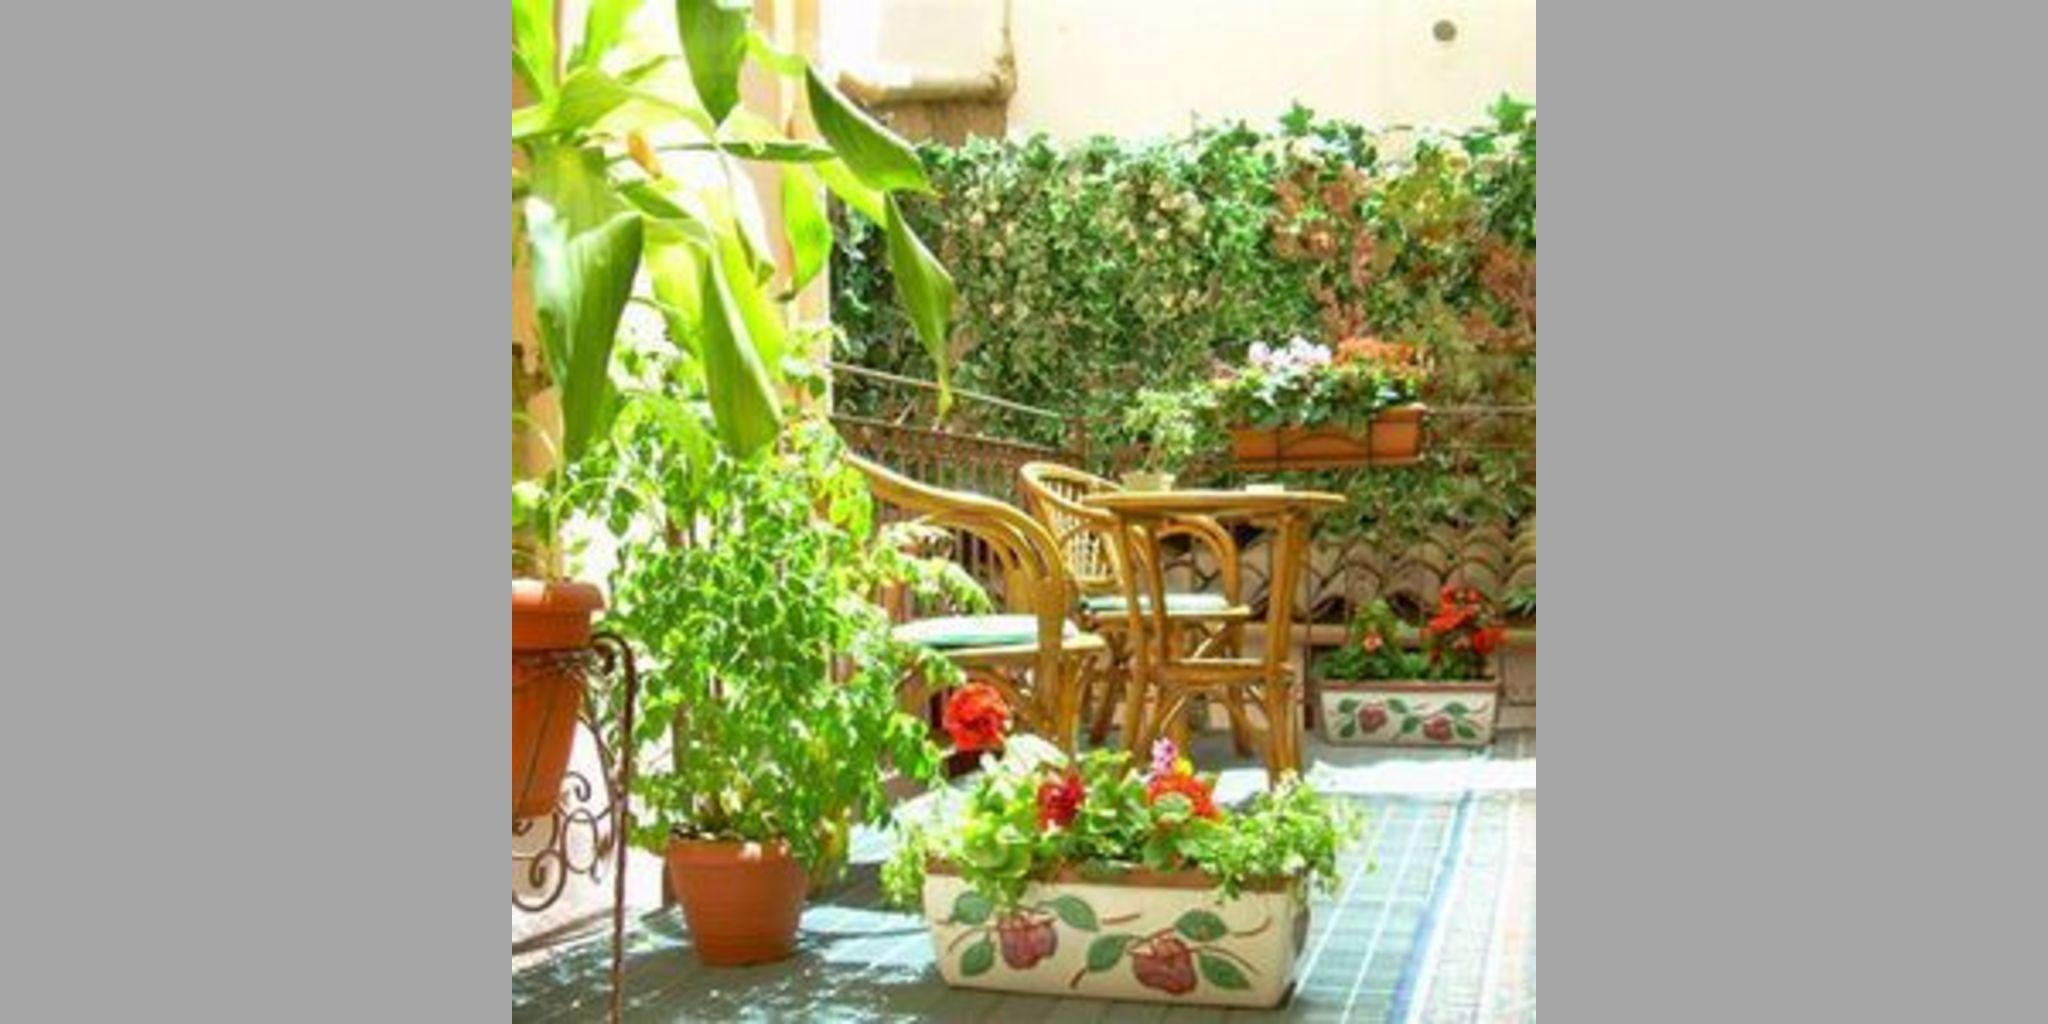 Bed & Breakfast Agrigento - Valle Dei Templi_B